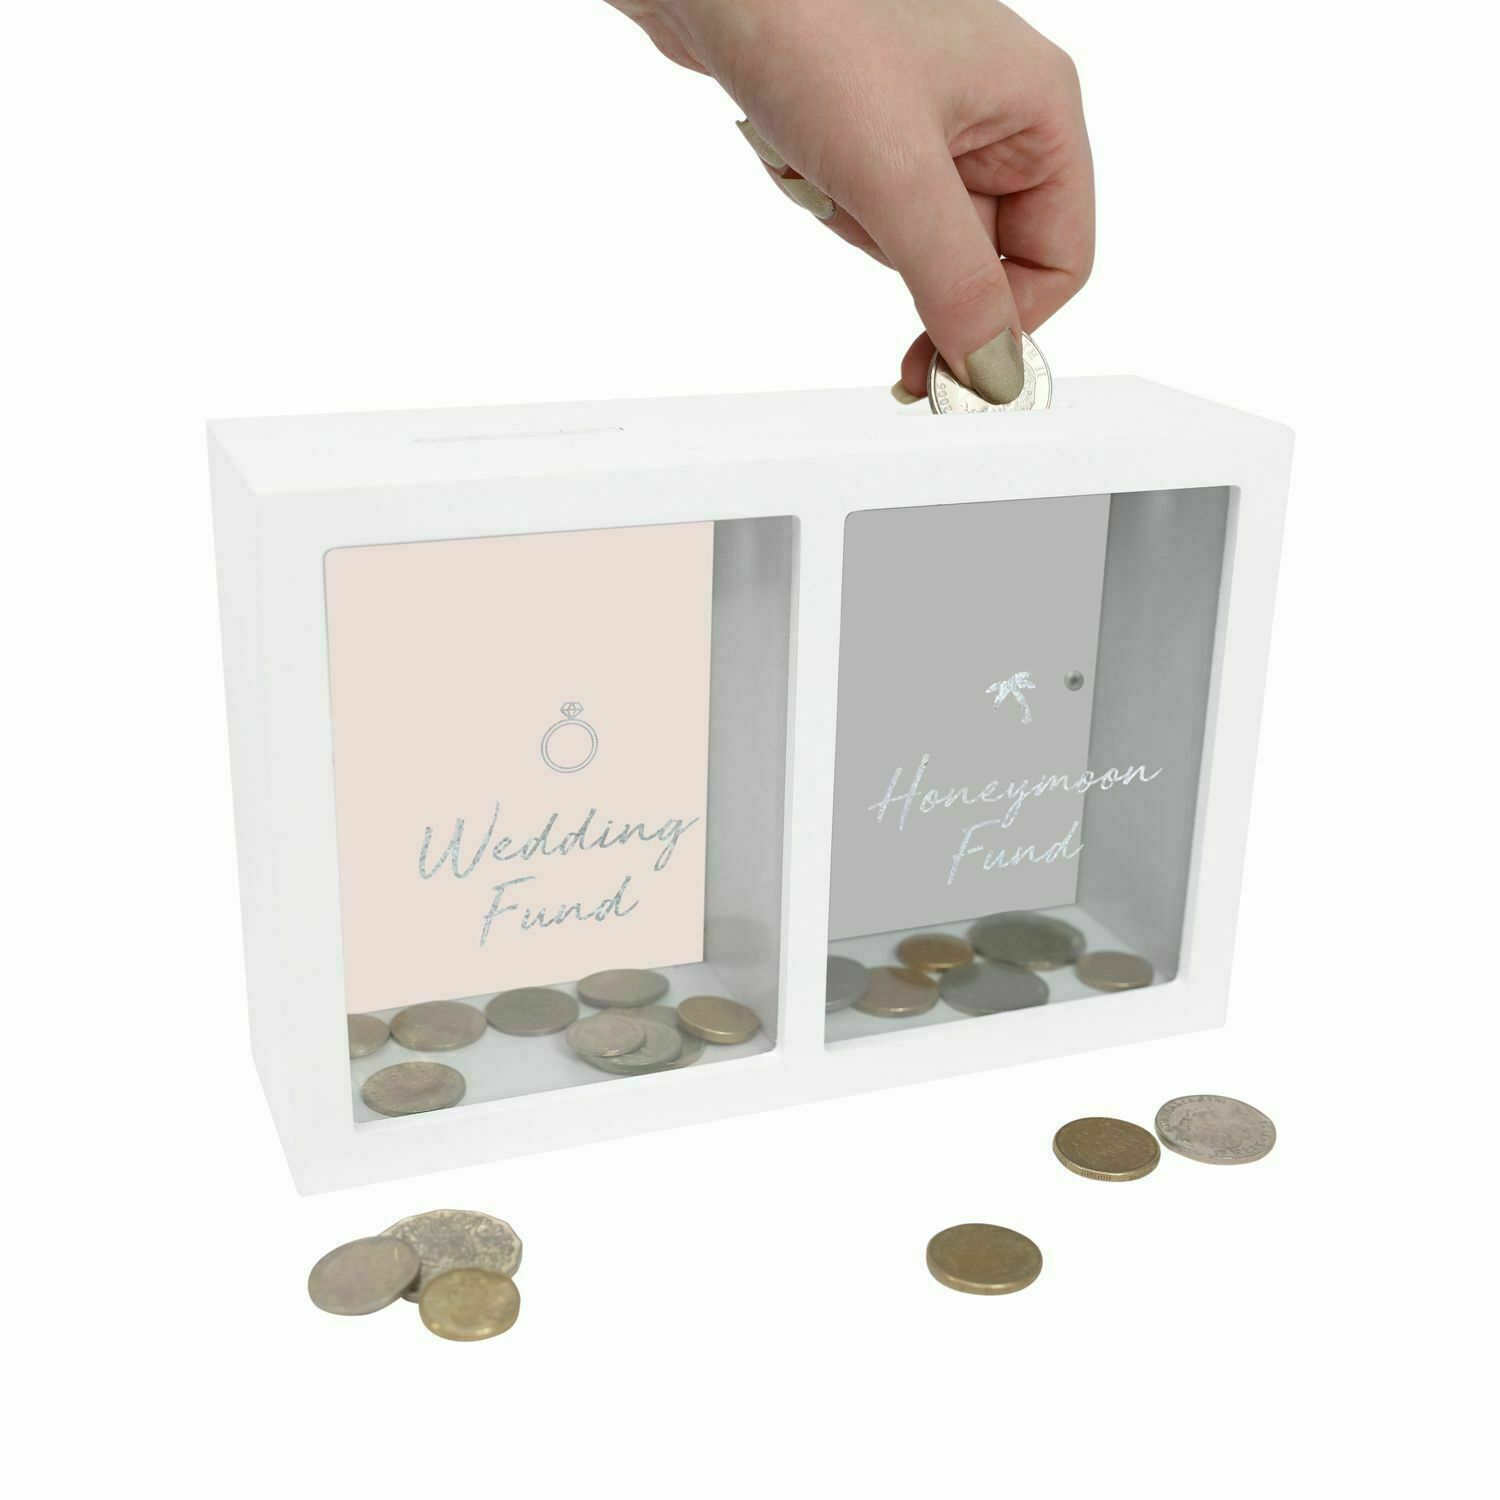 Wedding Money Box Piggy Bank Fund For Honeymoon Change Savings Engagement Gift For Sale Online